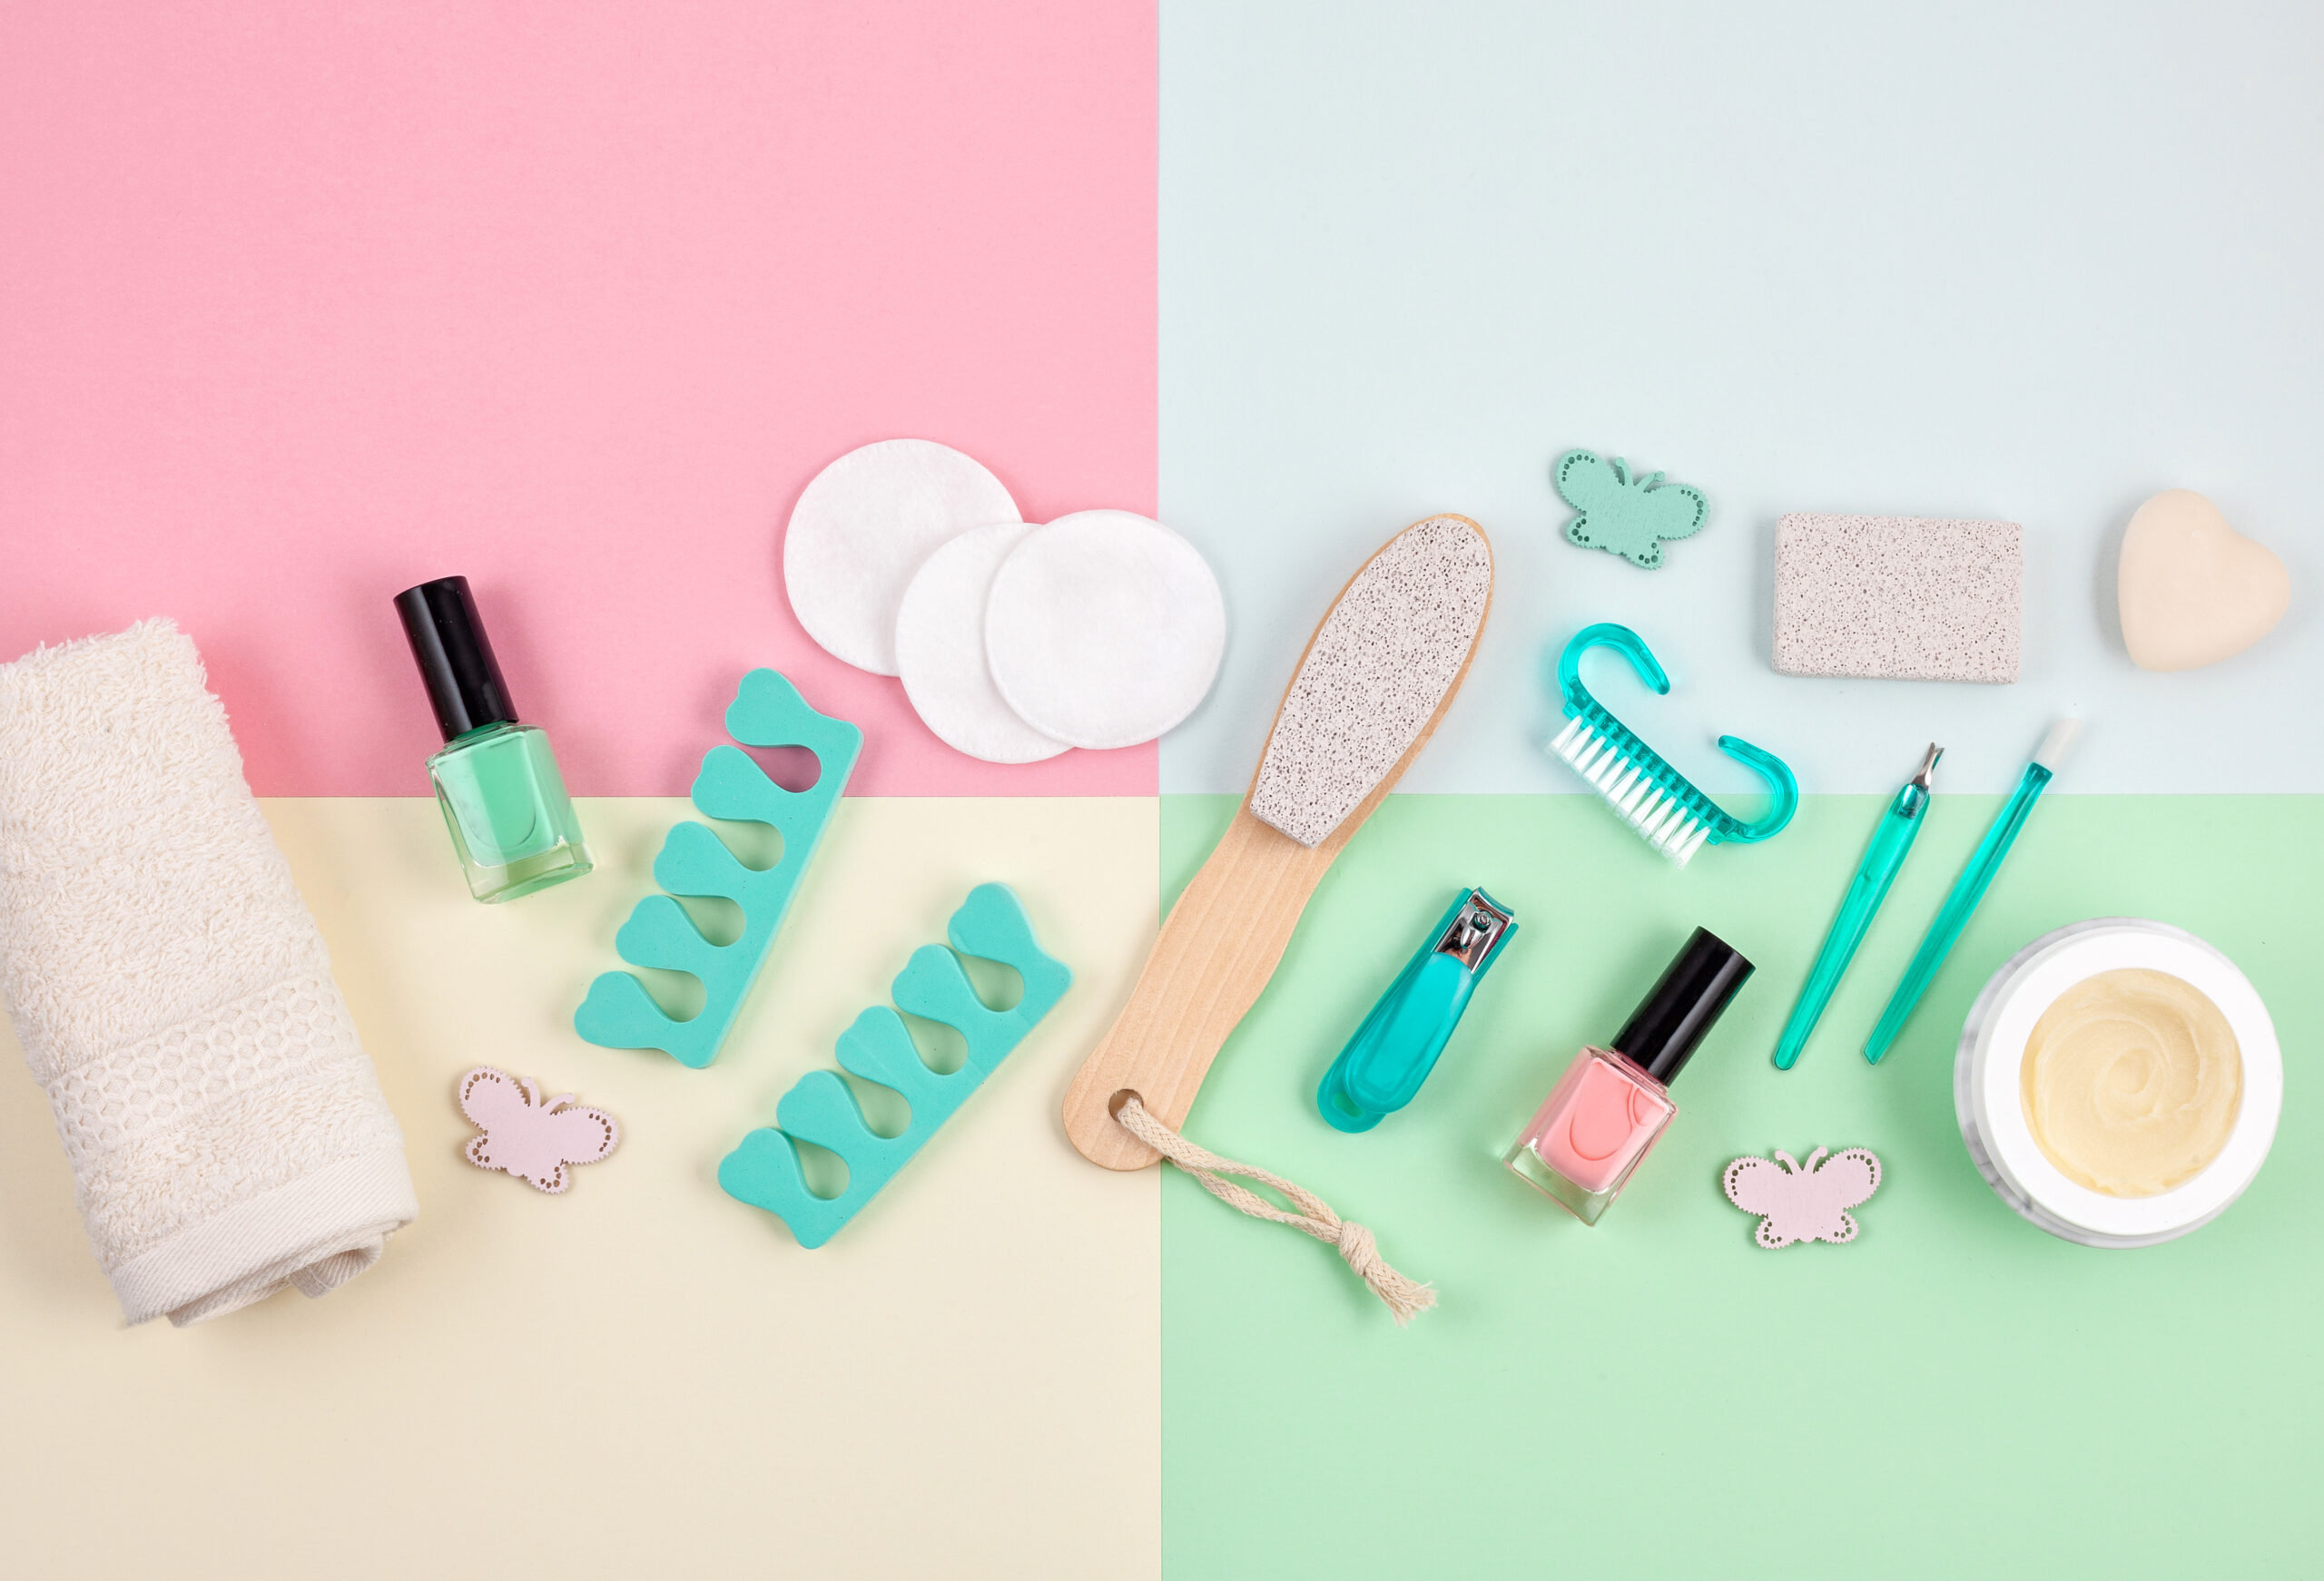 Mockup of beauty cosmetic products for manicure, pedicure, feet and hands care, flat lay, top view. Woman beauty fashion image for sales, shopping, fashion and beauty blogs